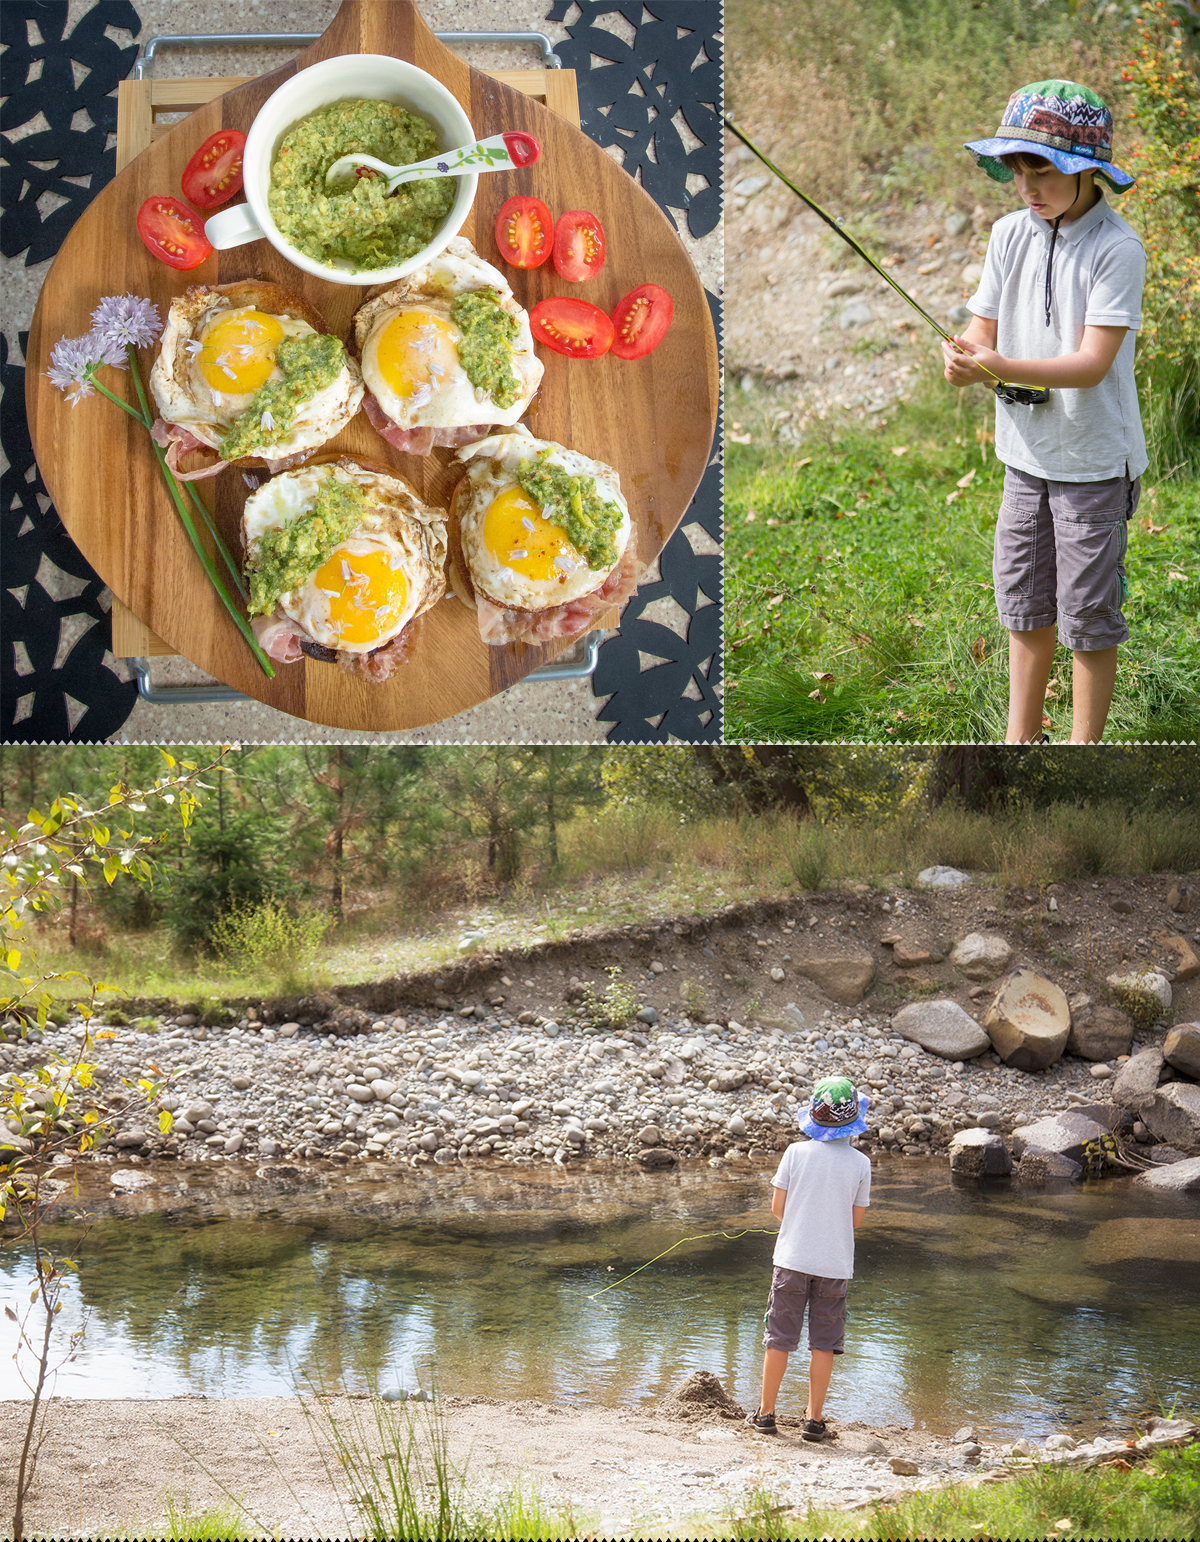 breakfast and fishing with our Airstream travel trailer in beautiful Roslyn, washington